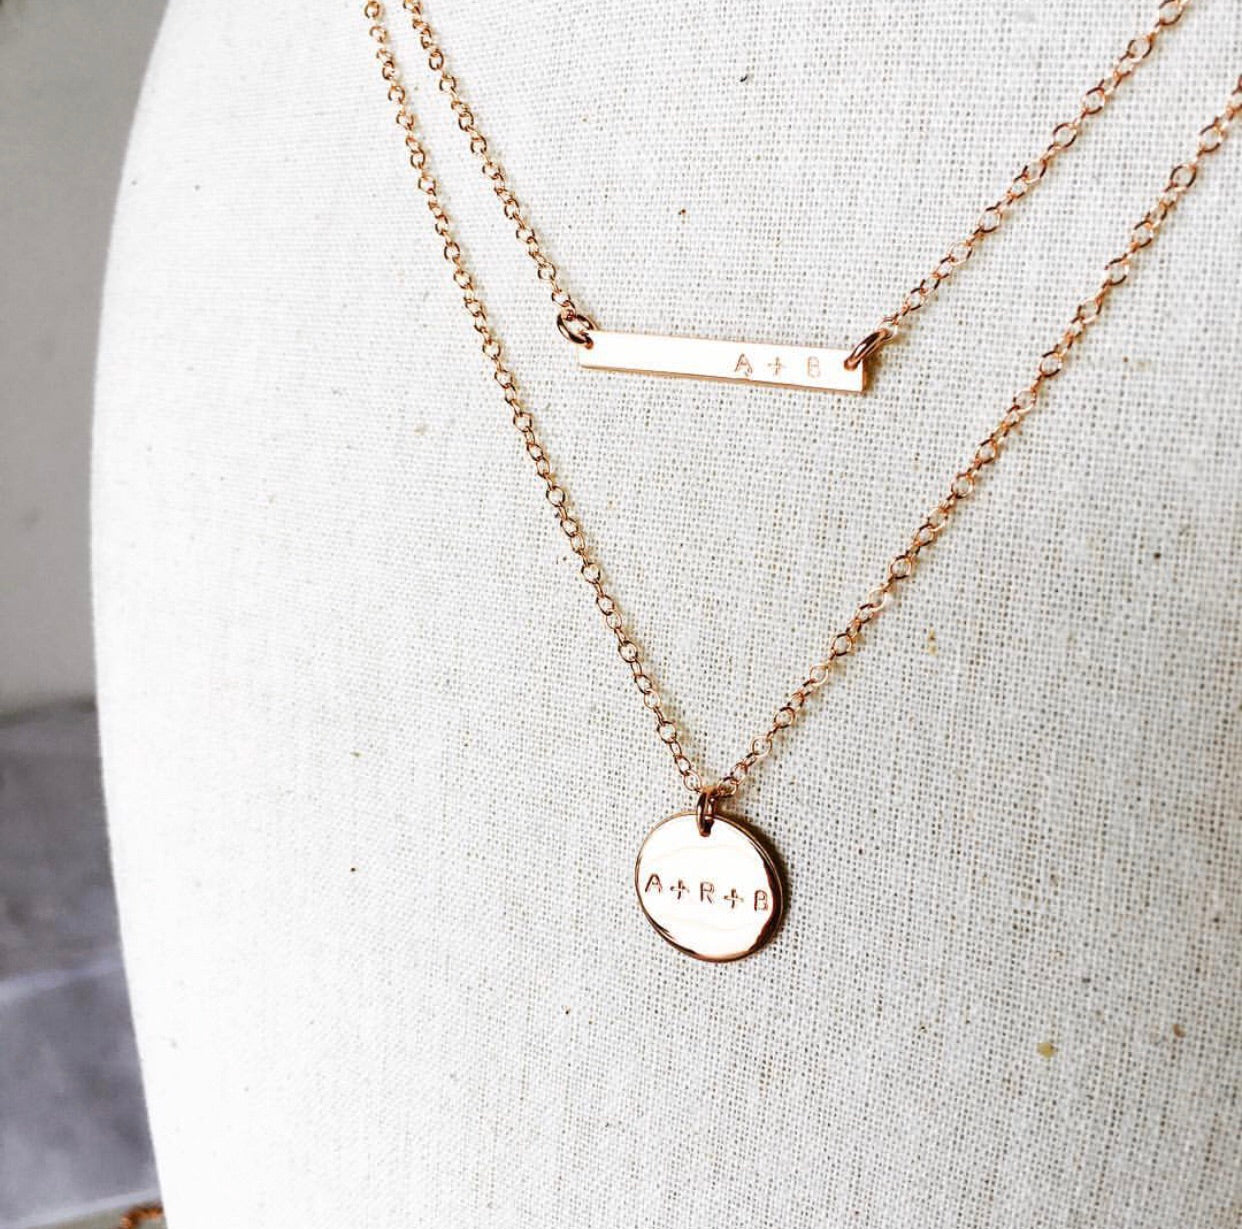 Eva Bar + Chloe Pendant Necklaces